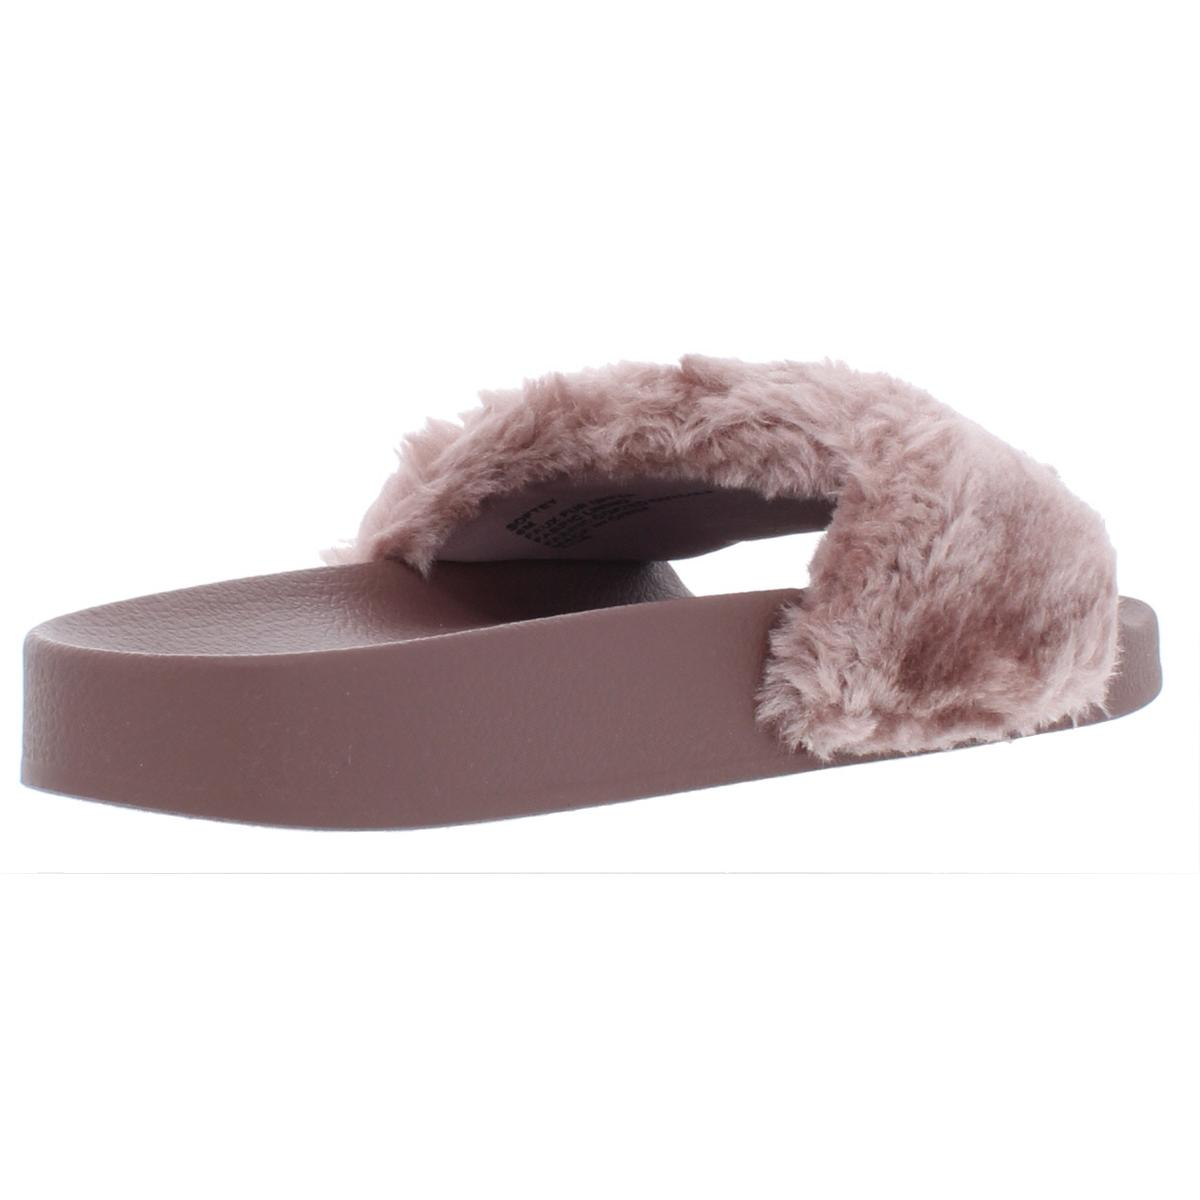 Steve-Madden-Softey-Women-039-s-Faux-Fur-Casual-Spa-Pool-Slide-Sandals-Shoes thumbnail 6